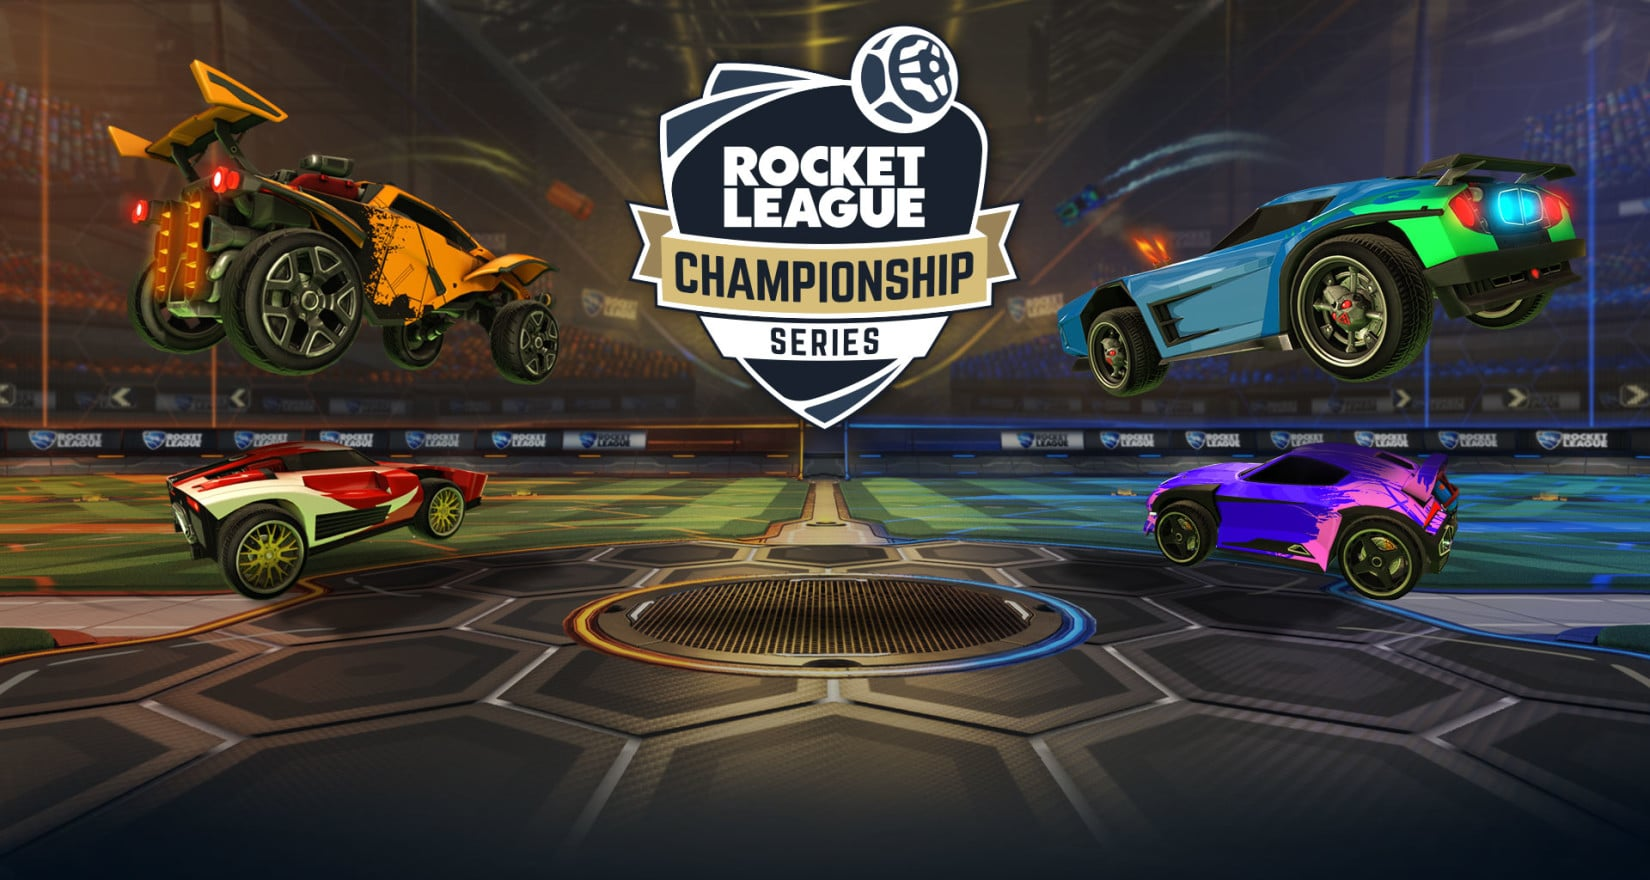 Старт Rocket League Championship Series — квалификация (повторы матчей)